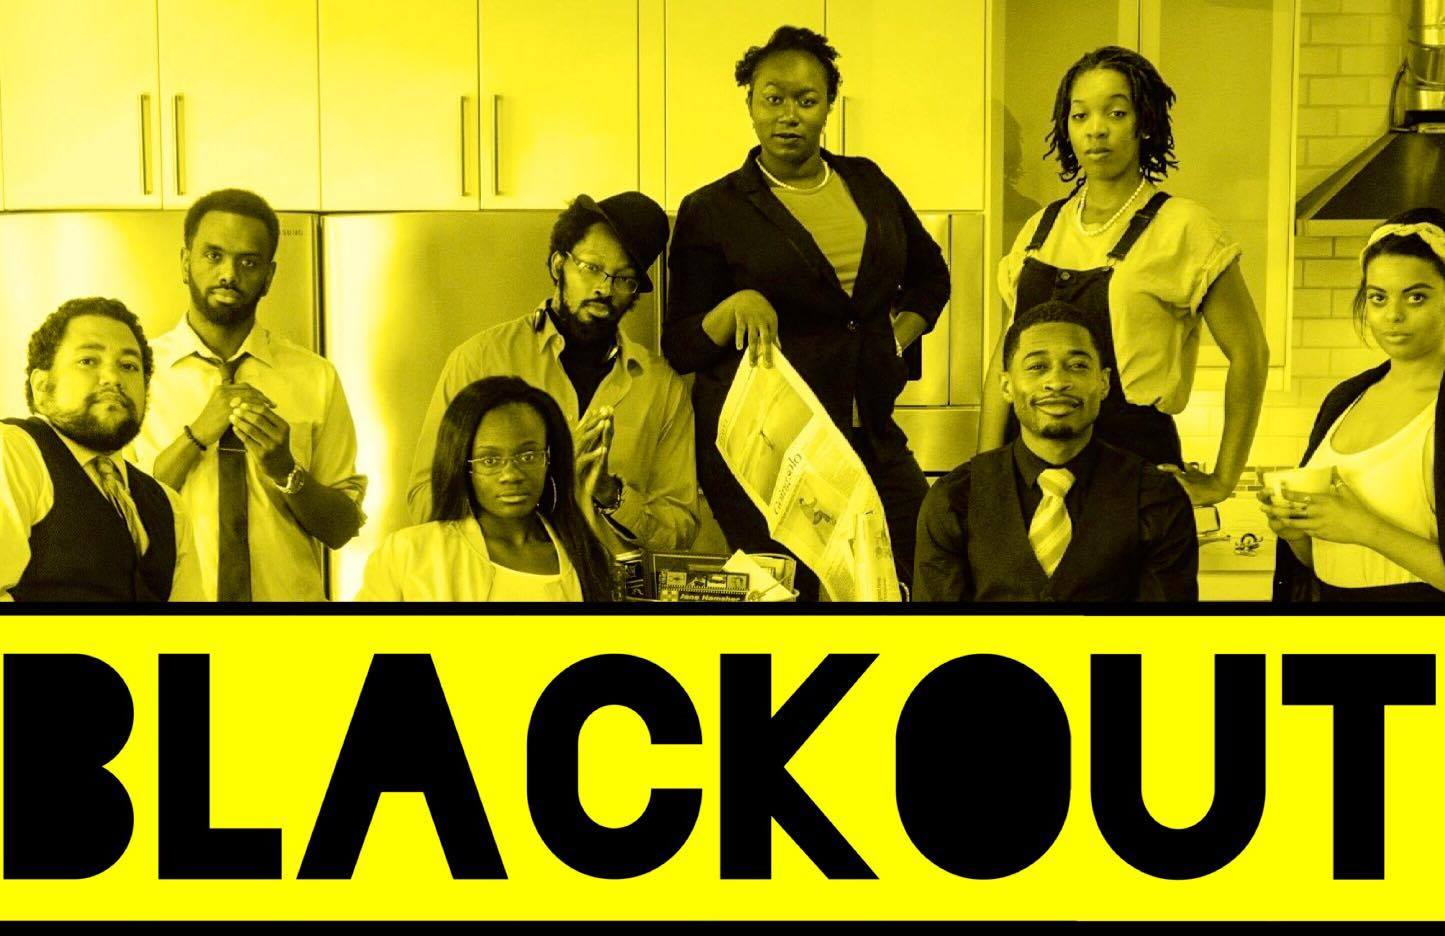 Five performers, all african-american, around the word blackout